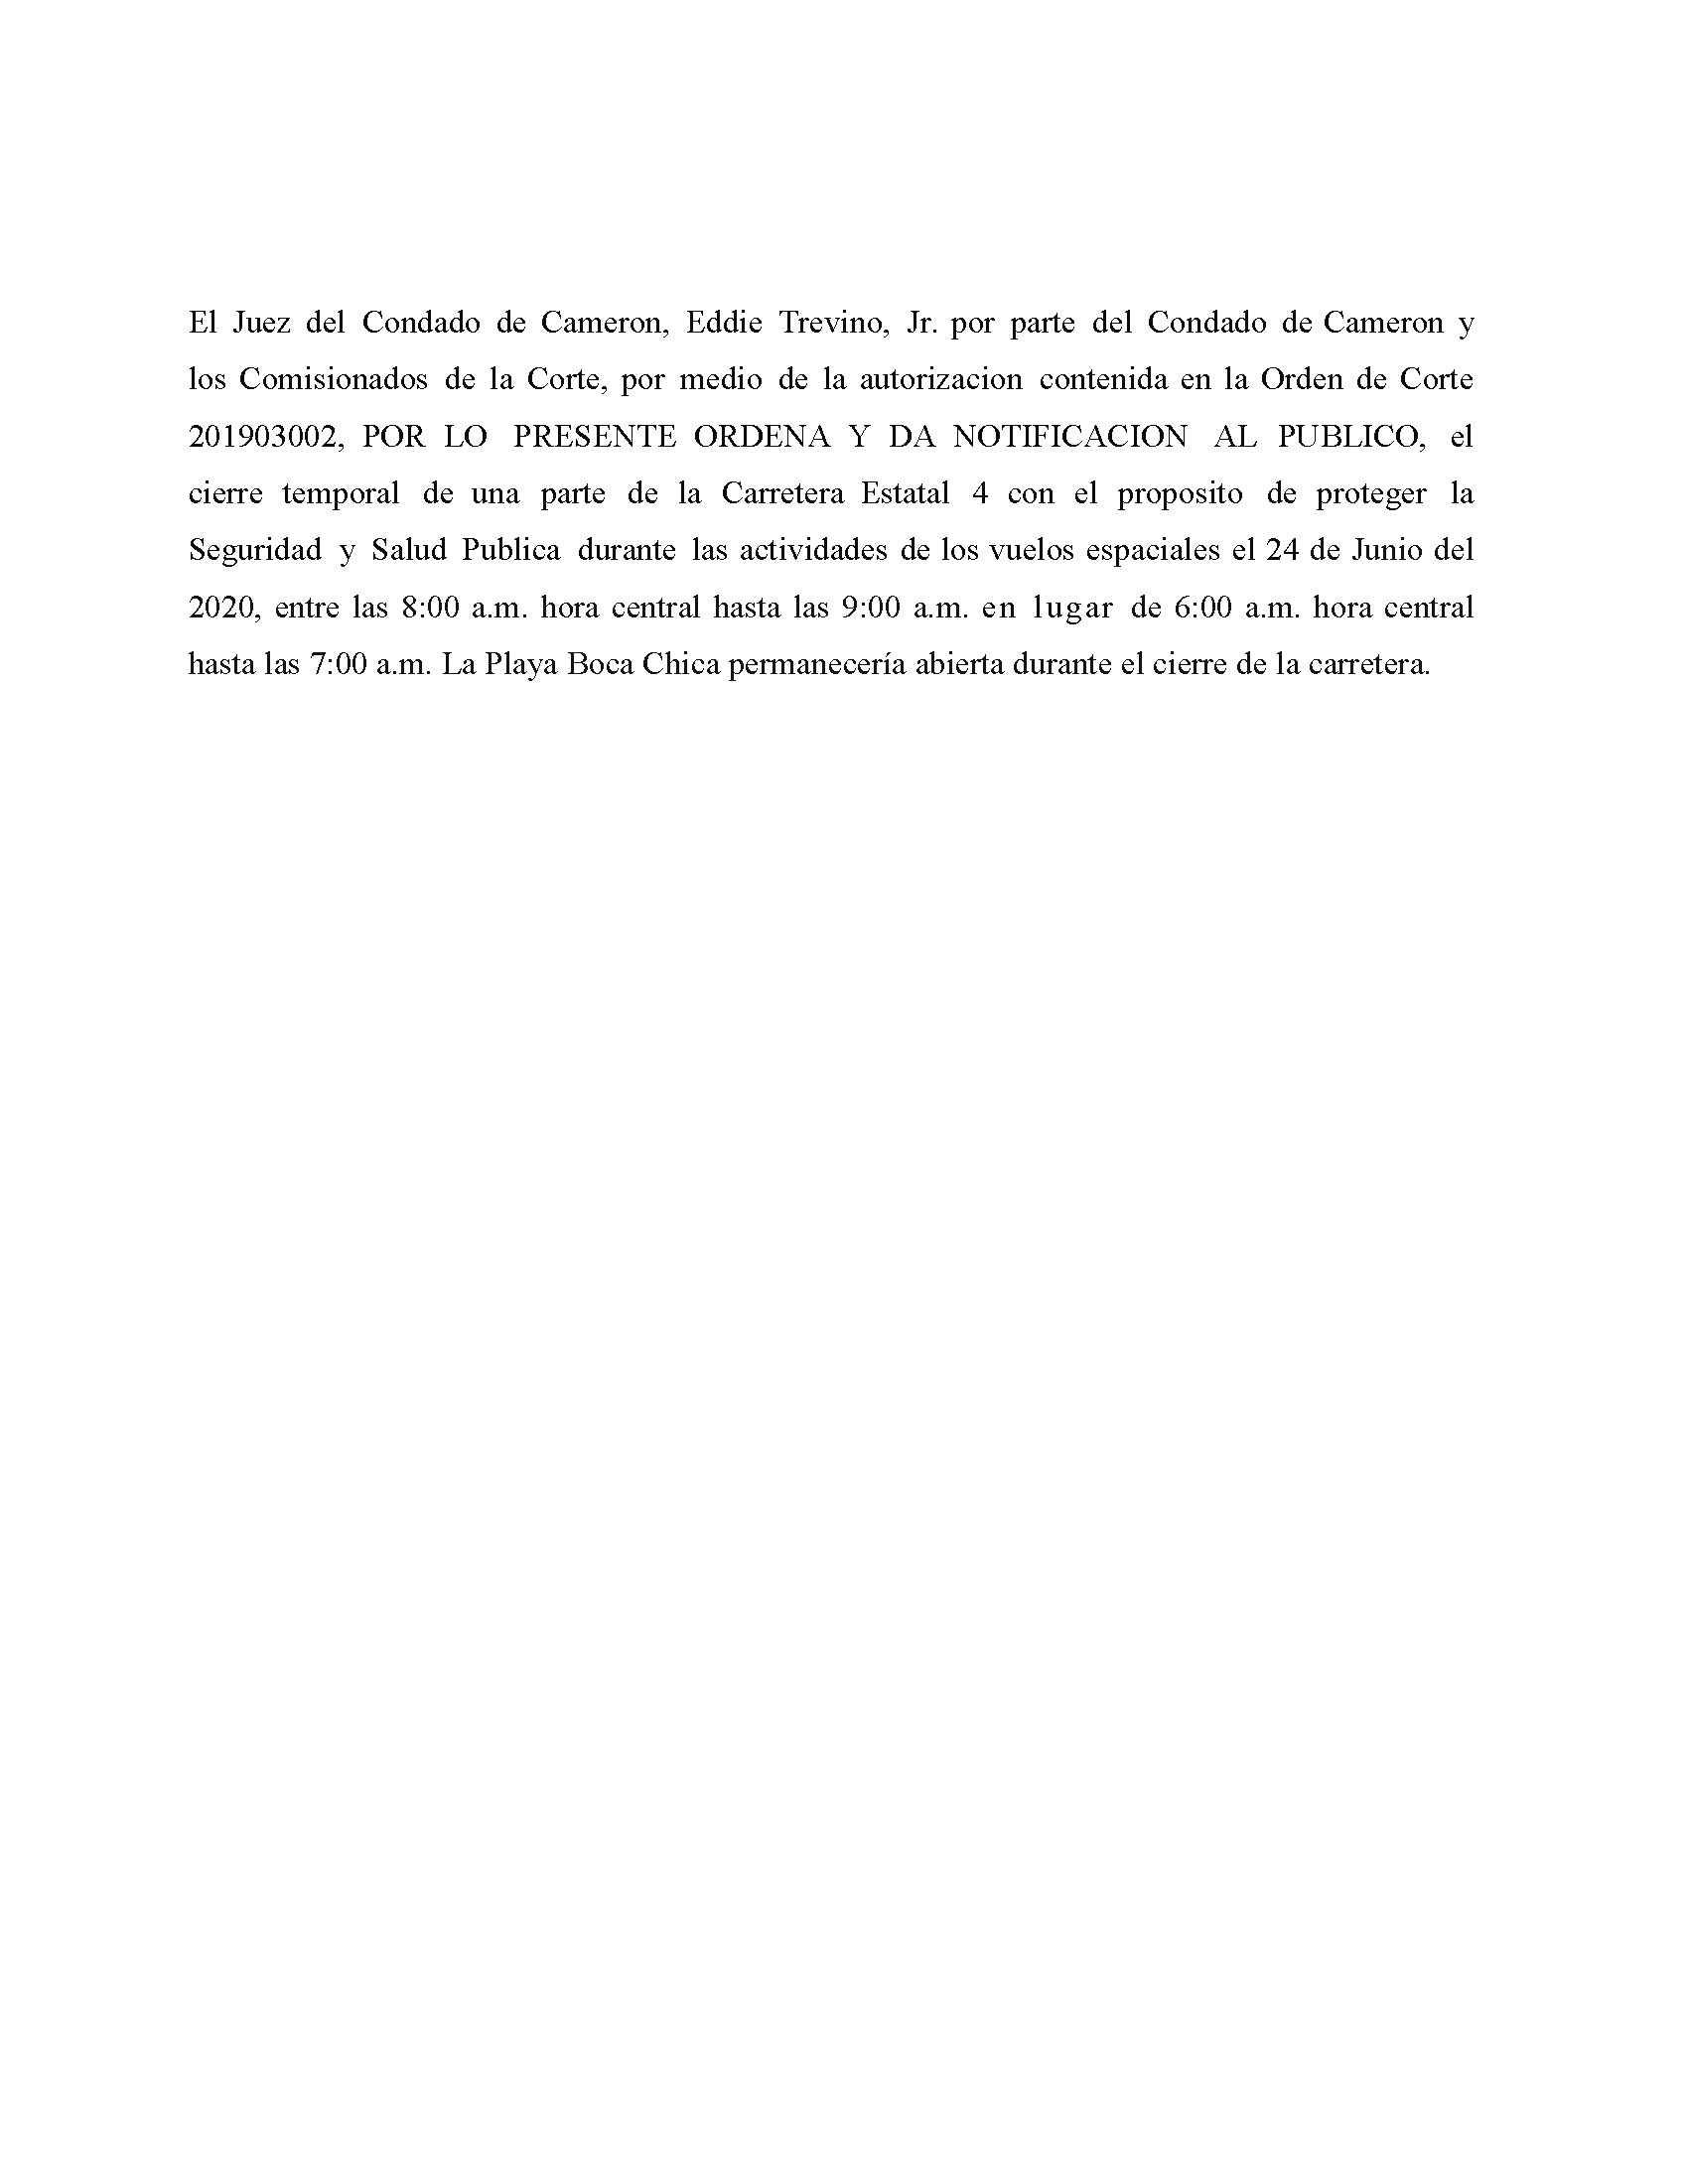 Amended Order In Spanish 06.24.2020.State Hwy 4 Closure Only